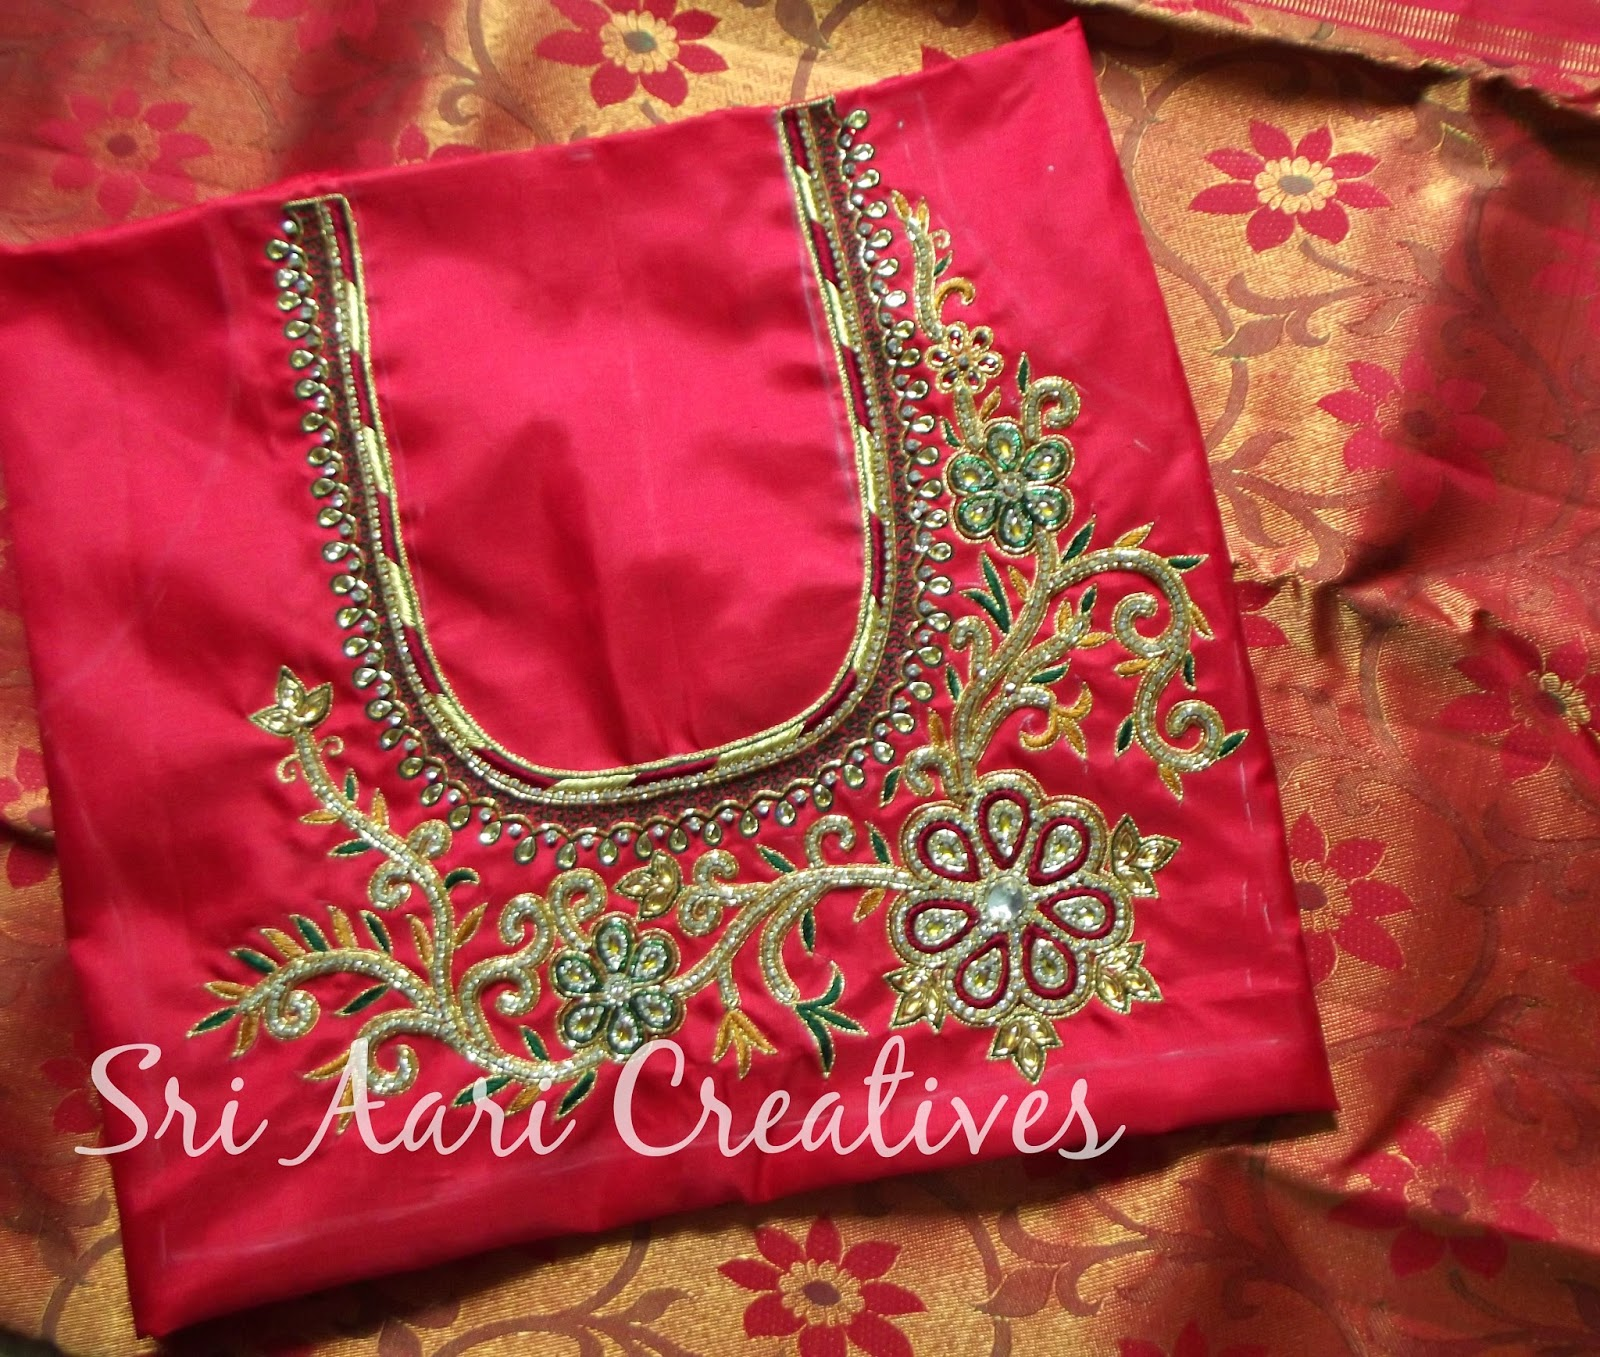 Blouse embroidery designs classes in bangalore dating 10